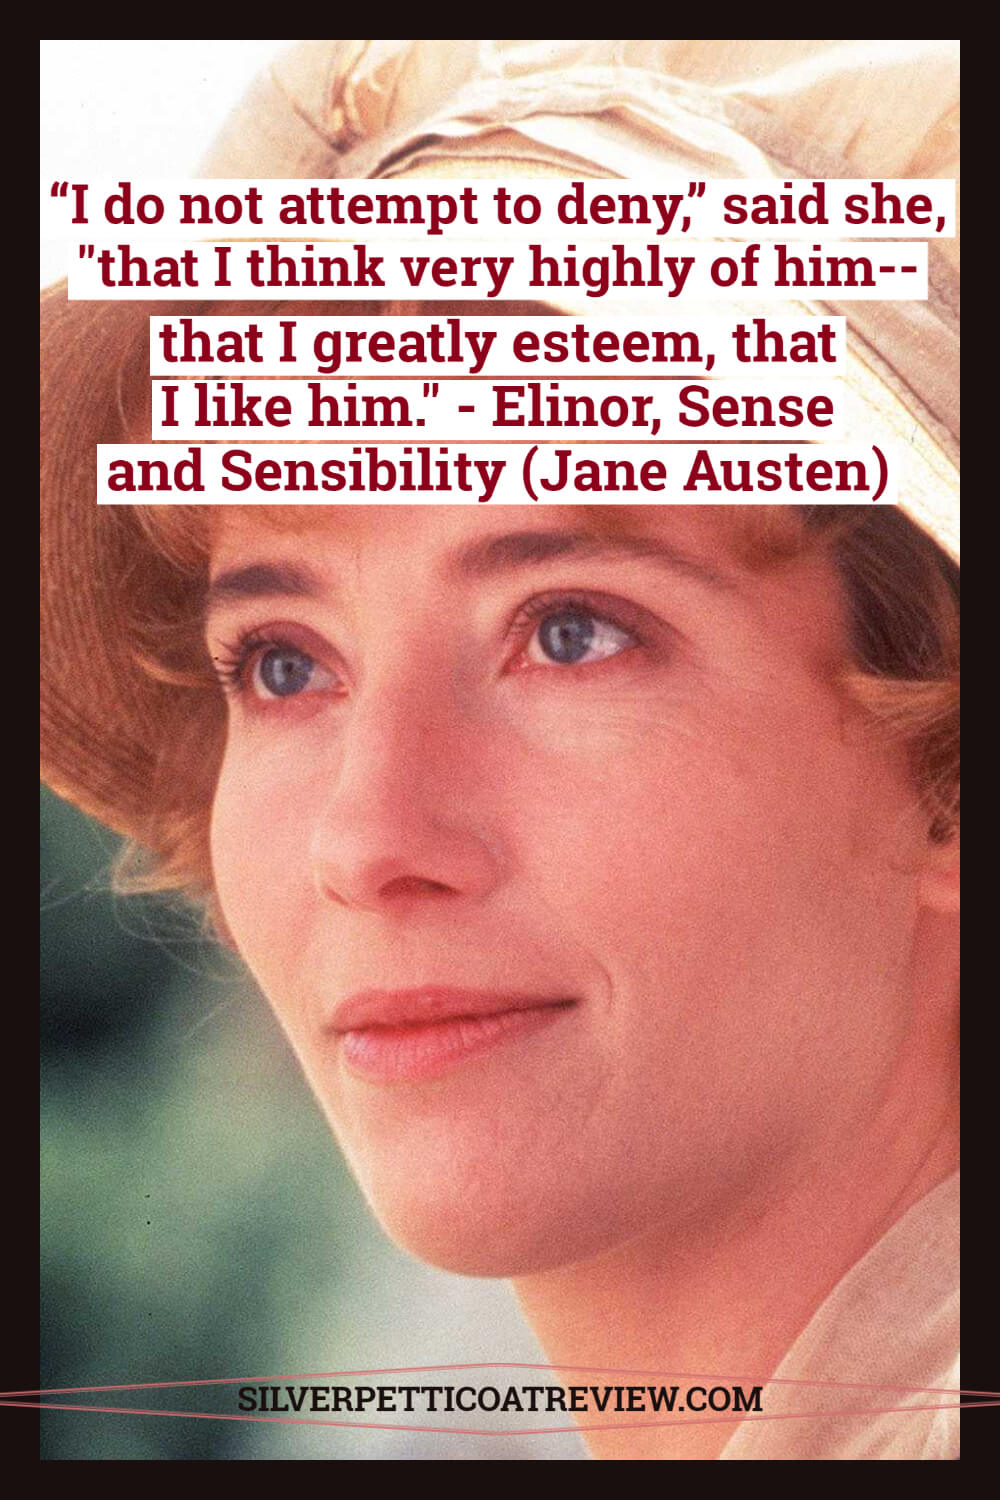 Sense and Sensibility Elinor quote; jane austen quotes about love